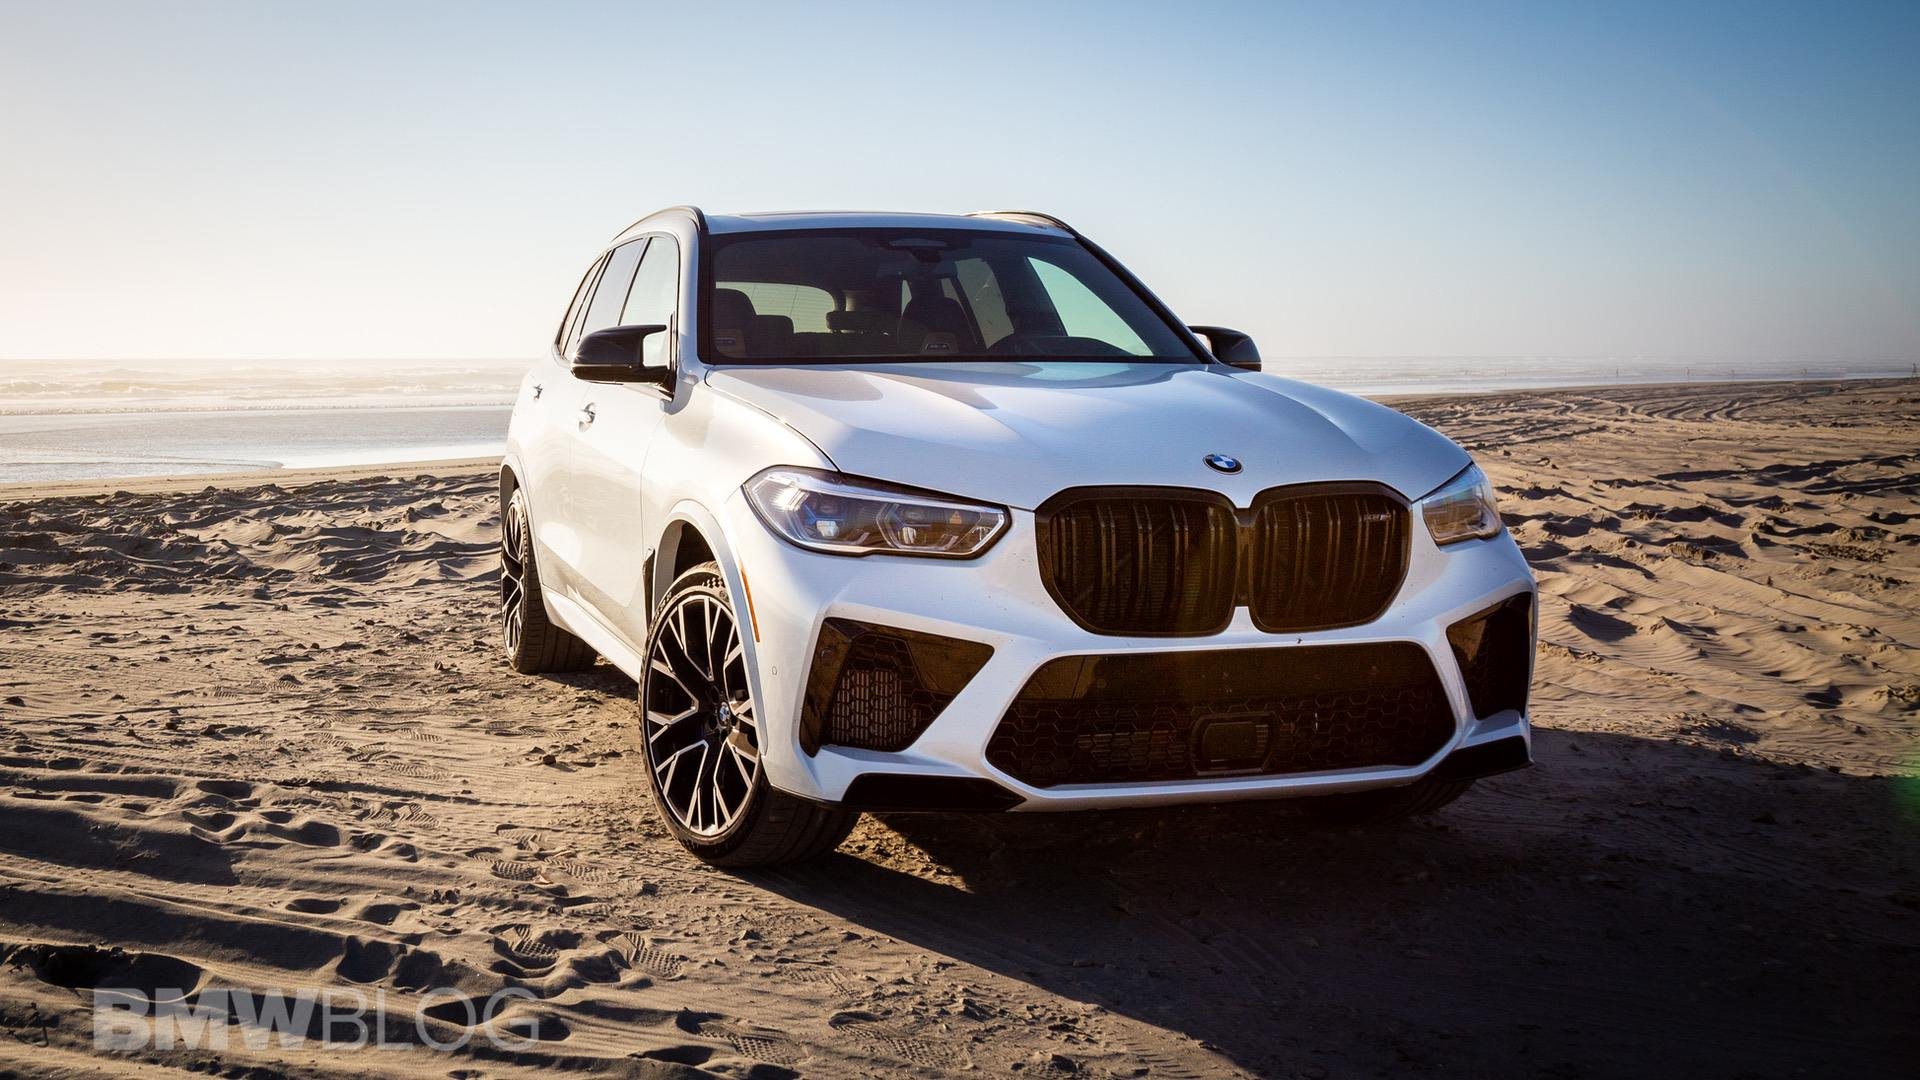 2021 bmw x5 m competition road trip 11